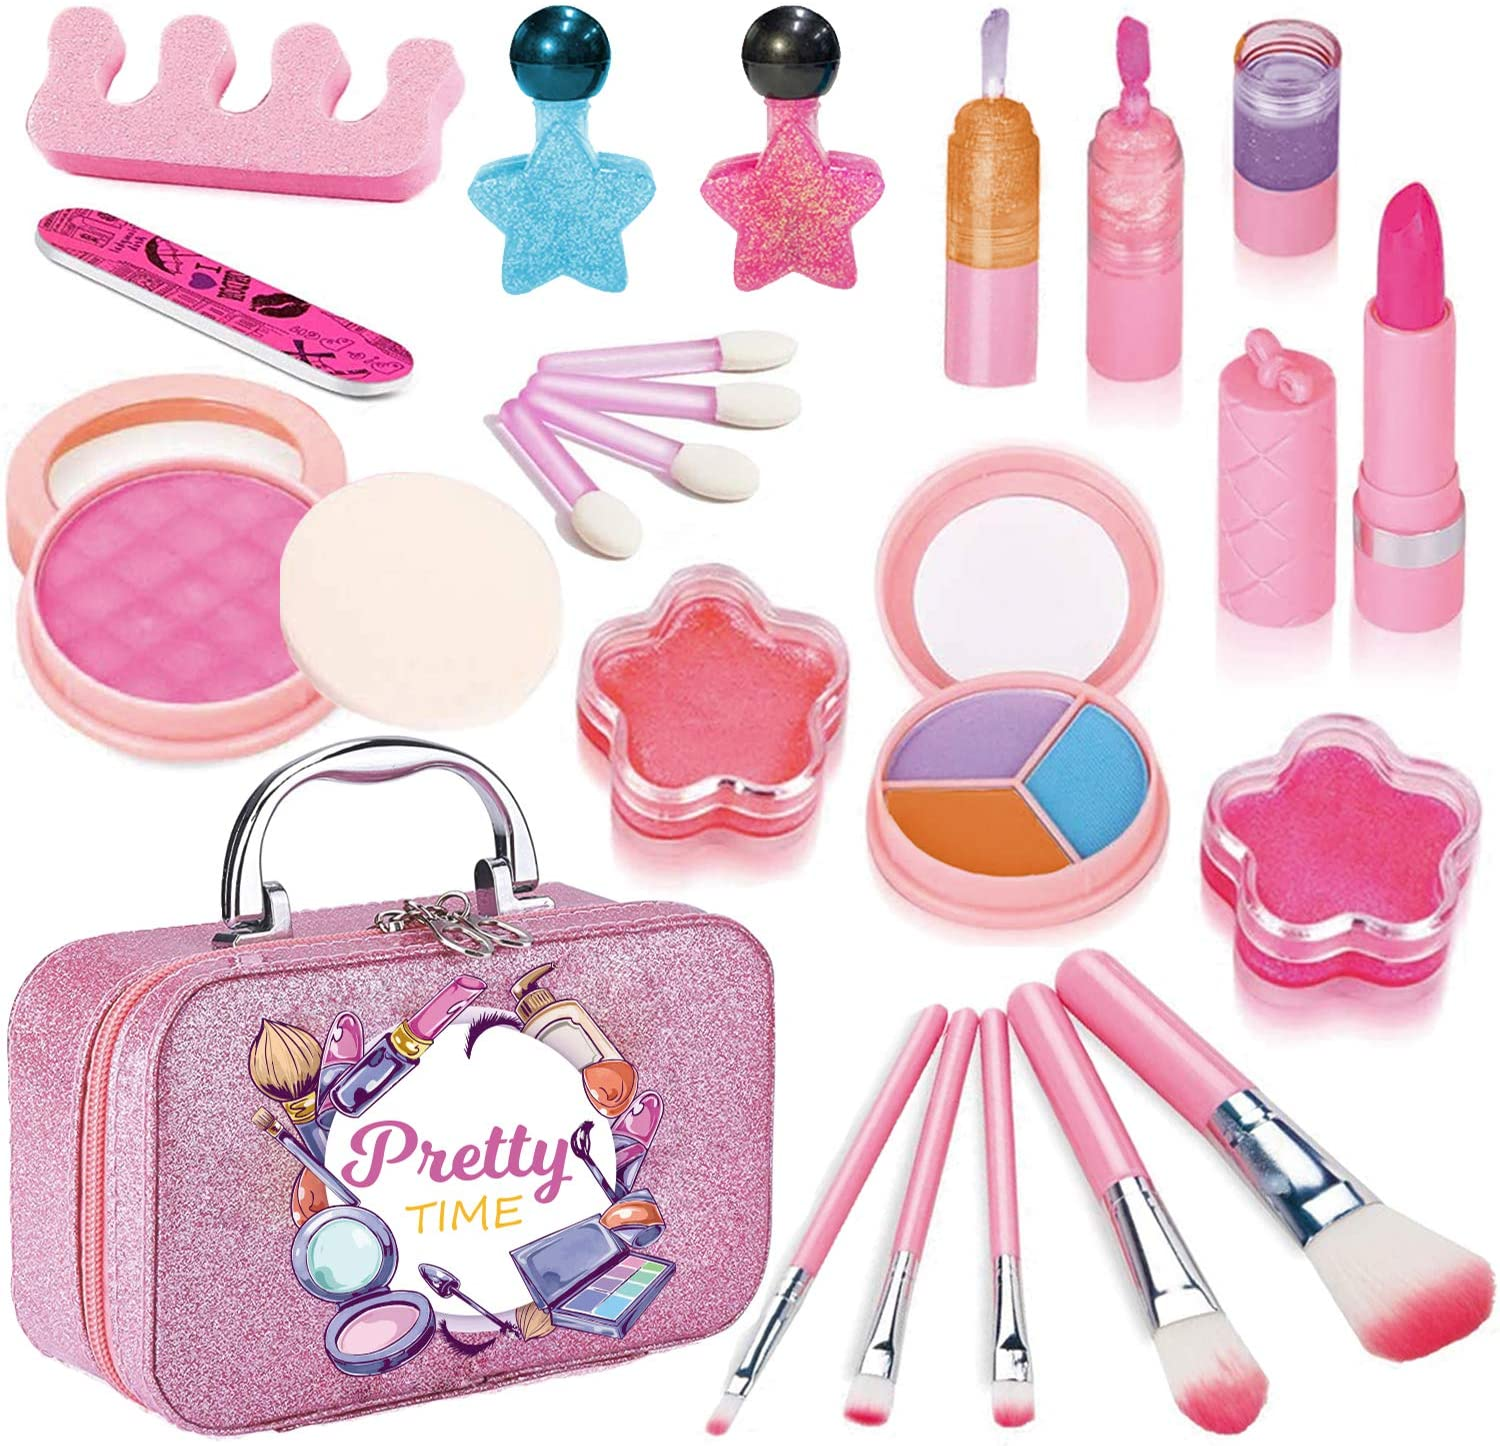 Makeup Kits for Girls, Real Washable Make Up Toys for Kids Cosmetic Beauty Set Facial Beauty Dress-up kit with Eye Shadow, Blush, Brushes, Lip Gloss, Nail Polish for Party Game Christmas Birthday